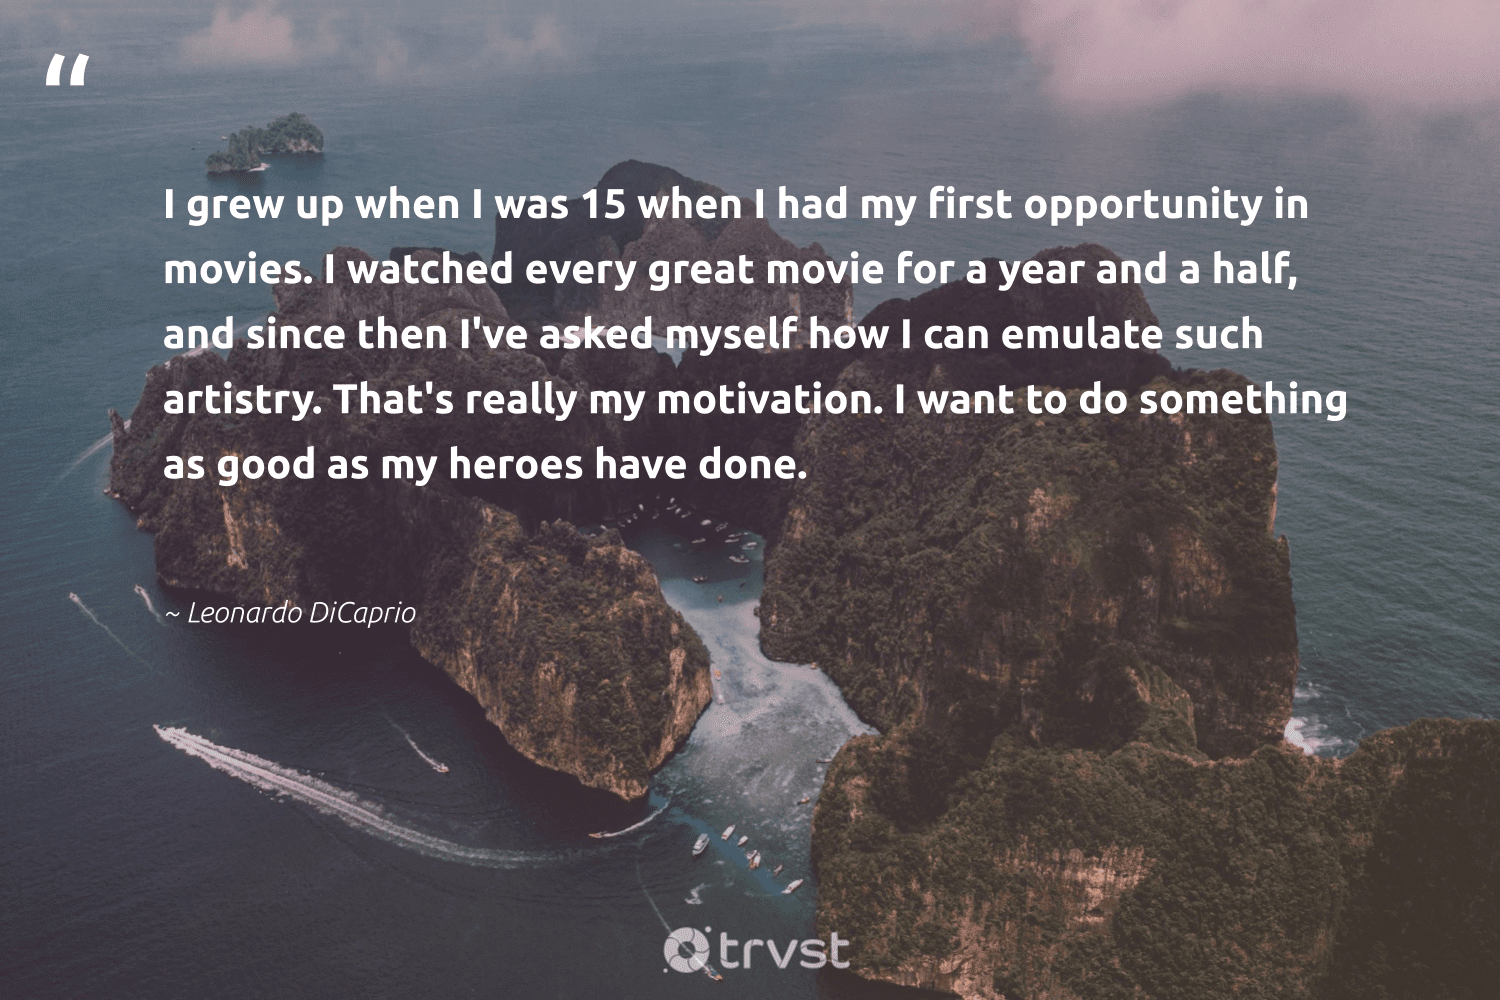 """""""I grew up when I was 15 when I had my first opportunity in movies. I watched every great movie for a year and a half, and since then I've asked myself how I can emulate such artistry. That's really my motivation. I want to do something as good as my heroes have done.""""  - Leonardo DiCaprio #trvst #quotes #dosomething #motivation #positivity #passion #begreat #ecoconscious #creativemindset #youcandoit #health #bethechange"""